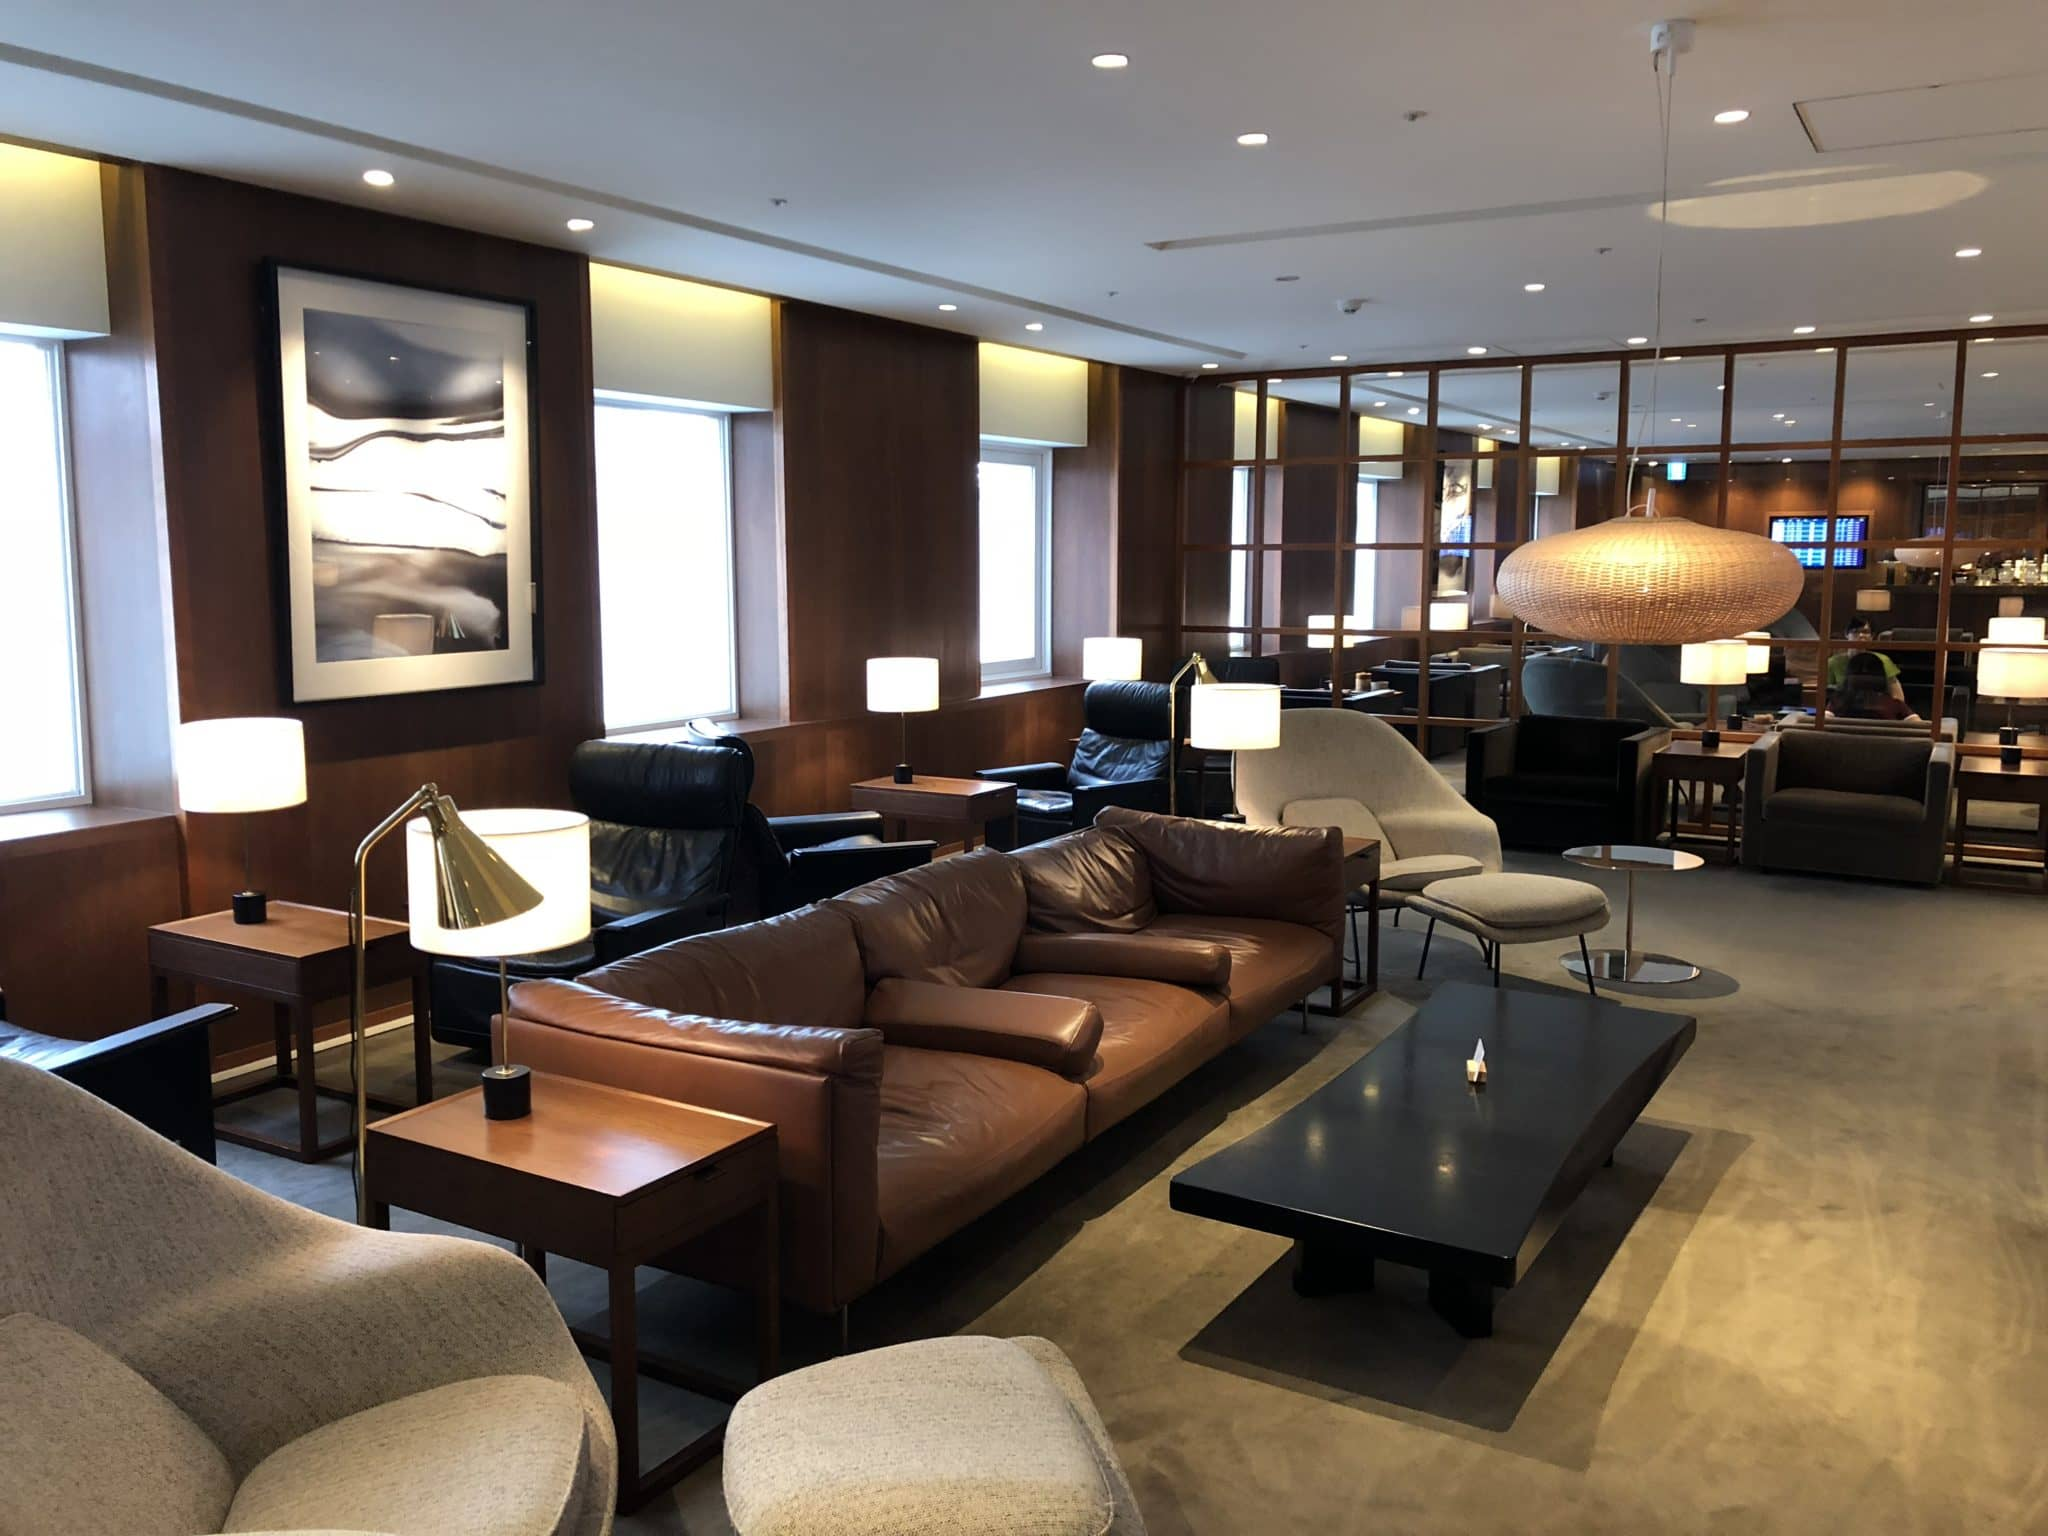 Cathay Pacific Business Class Lounge Taiwan-Taoyuan Diverse Sitzmoeglichkeiten